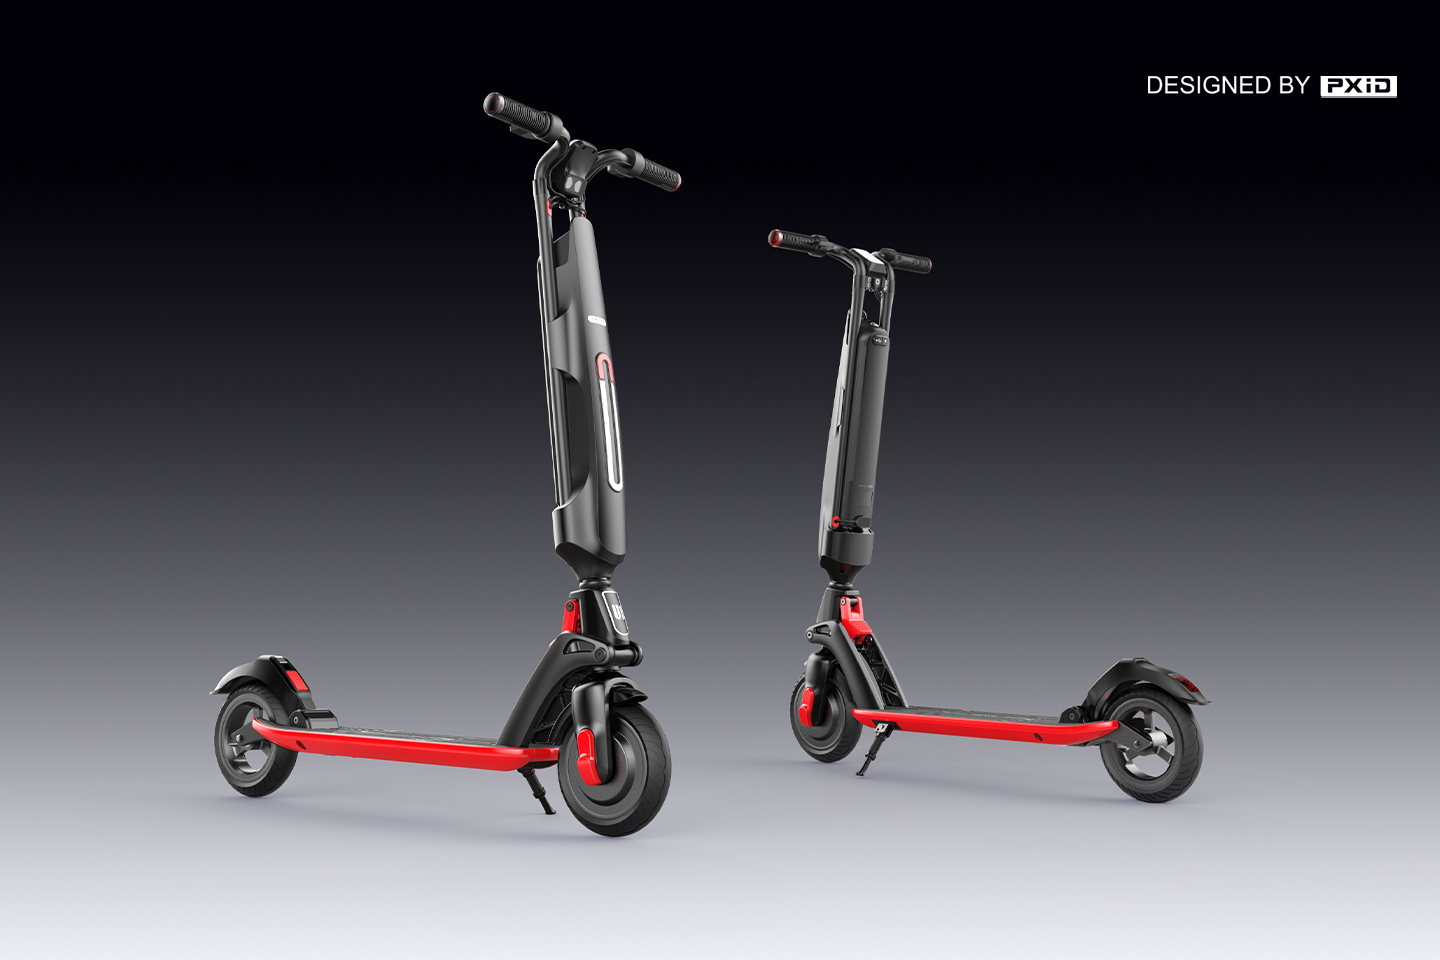 U1 scooter - the role of face value and strength